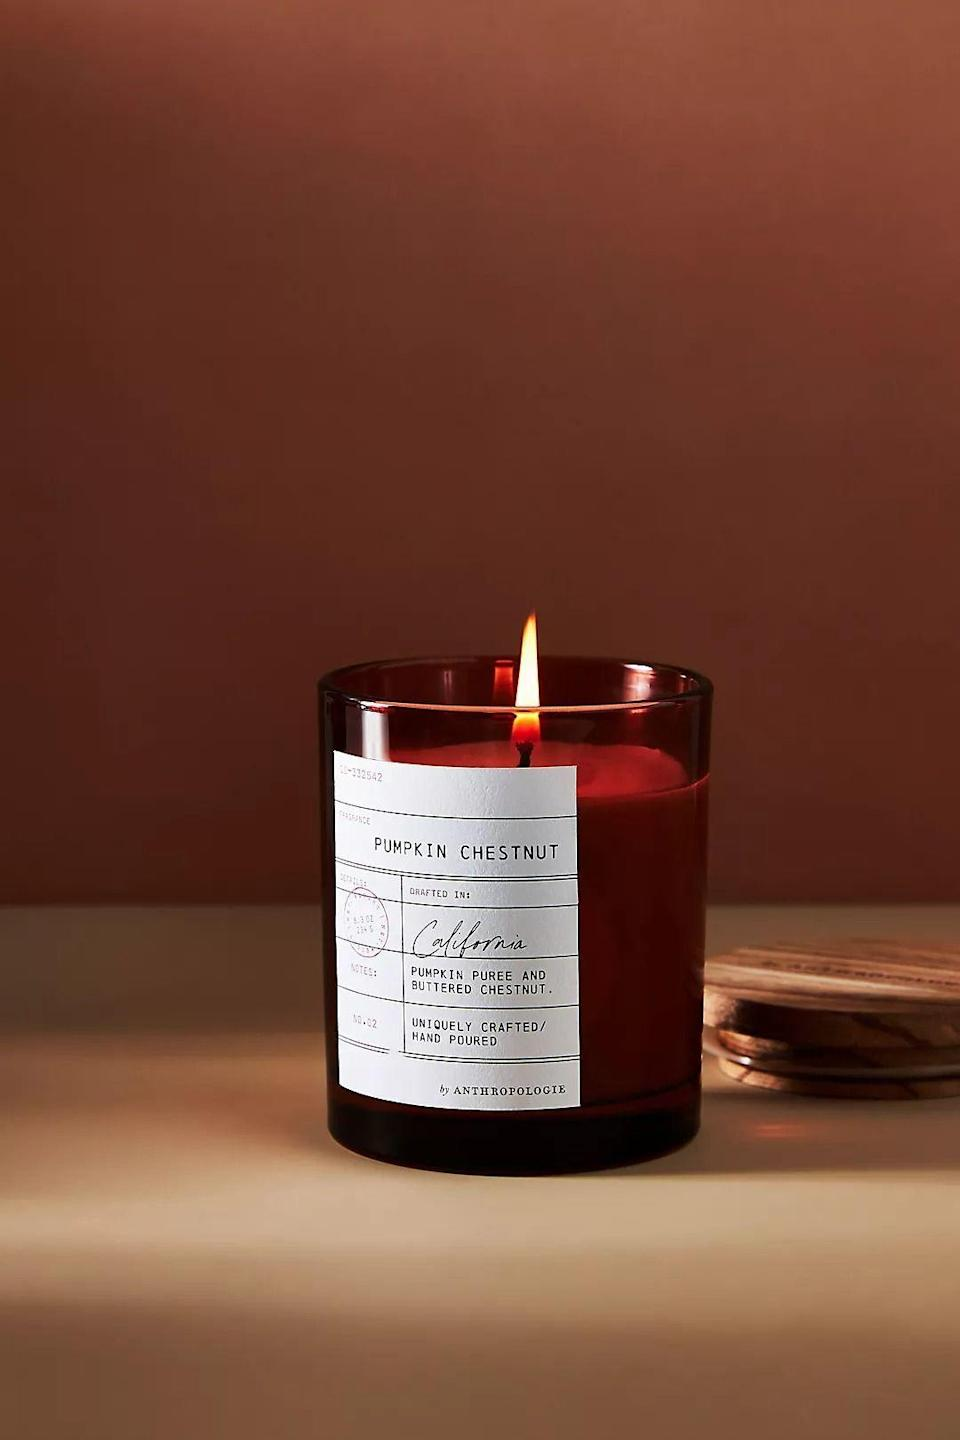 """<p><strong>Anthropologie</strong></p><p>anthropologie.com</p><p><strong>$24.00</strong></p><p><a href=""""https://go.redirectingat.com?id=74968X1596630&url=https%3A%2F%2Fwww.anthropologie.com%2Fshop%2Flibrary-card-glass-candle&sref=https%3A%2F%2Fwww.bestproducts.com%2Fhome%2Fg37377249%2Fbest-pumpkin-candles%2F"""" rel=""""nofollow noopener"""" target=""""_blank"""" data-ylk=""""slk:Shop Now"""" class=""""link rapid-noclick-resp"""">Shop Now</a></p><p>A match made in cozy heaven, this candle combines sweet and spicy pumpkin puree with smoky, buttery chestnuts along with amber notes. </p><p>It's a very elegant scent but still so fun to spark, and we love the library-card label adorning its jewel-tone glass votive.</p>"""